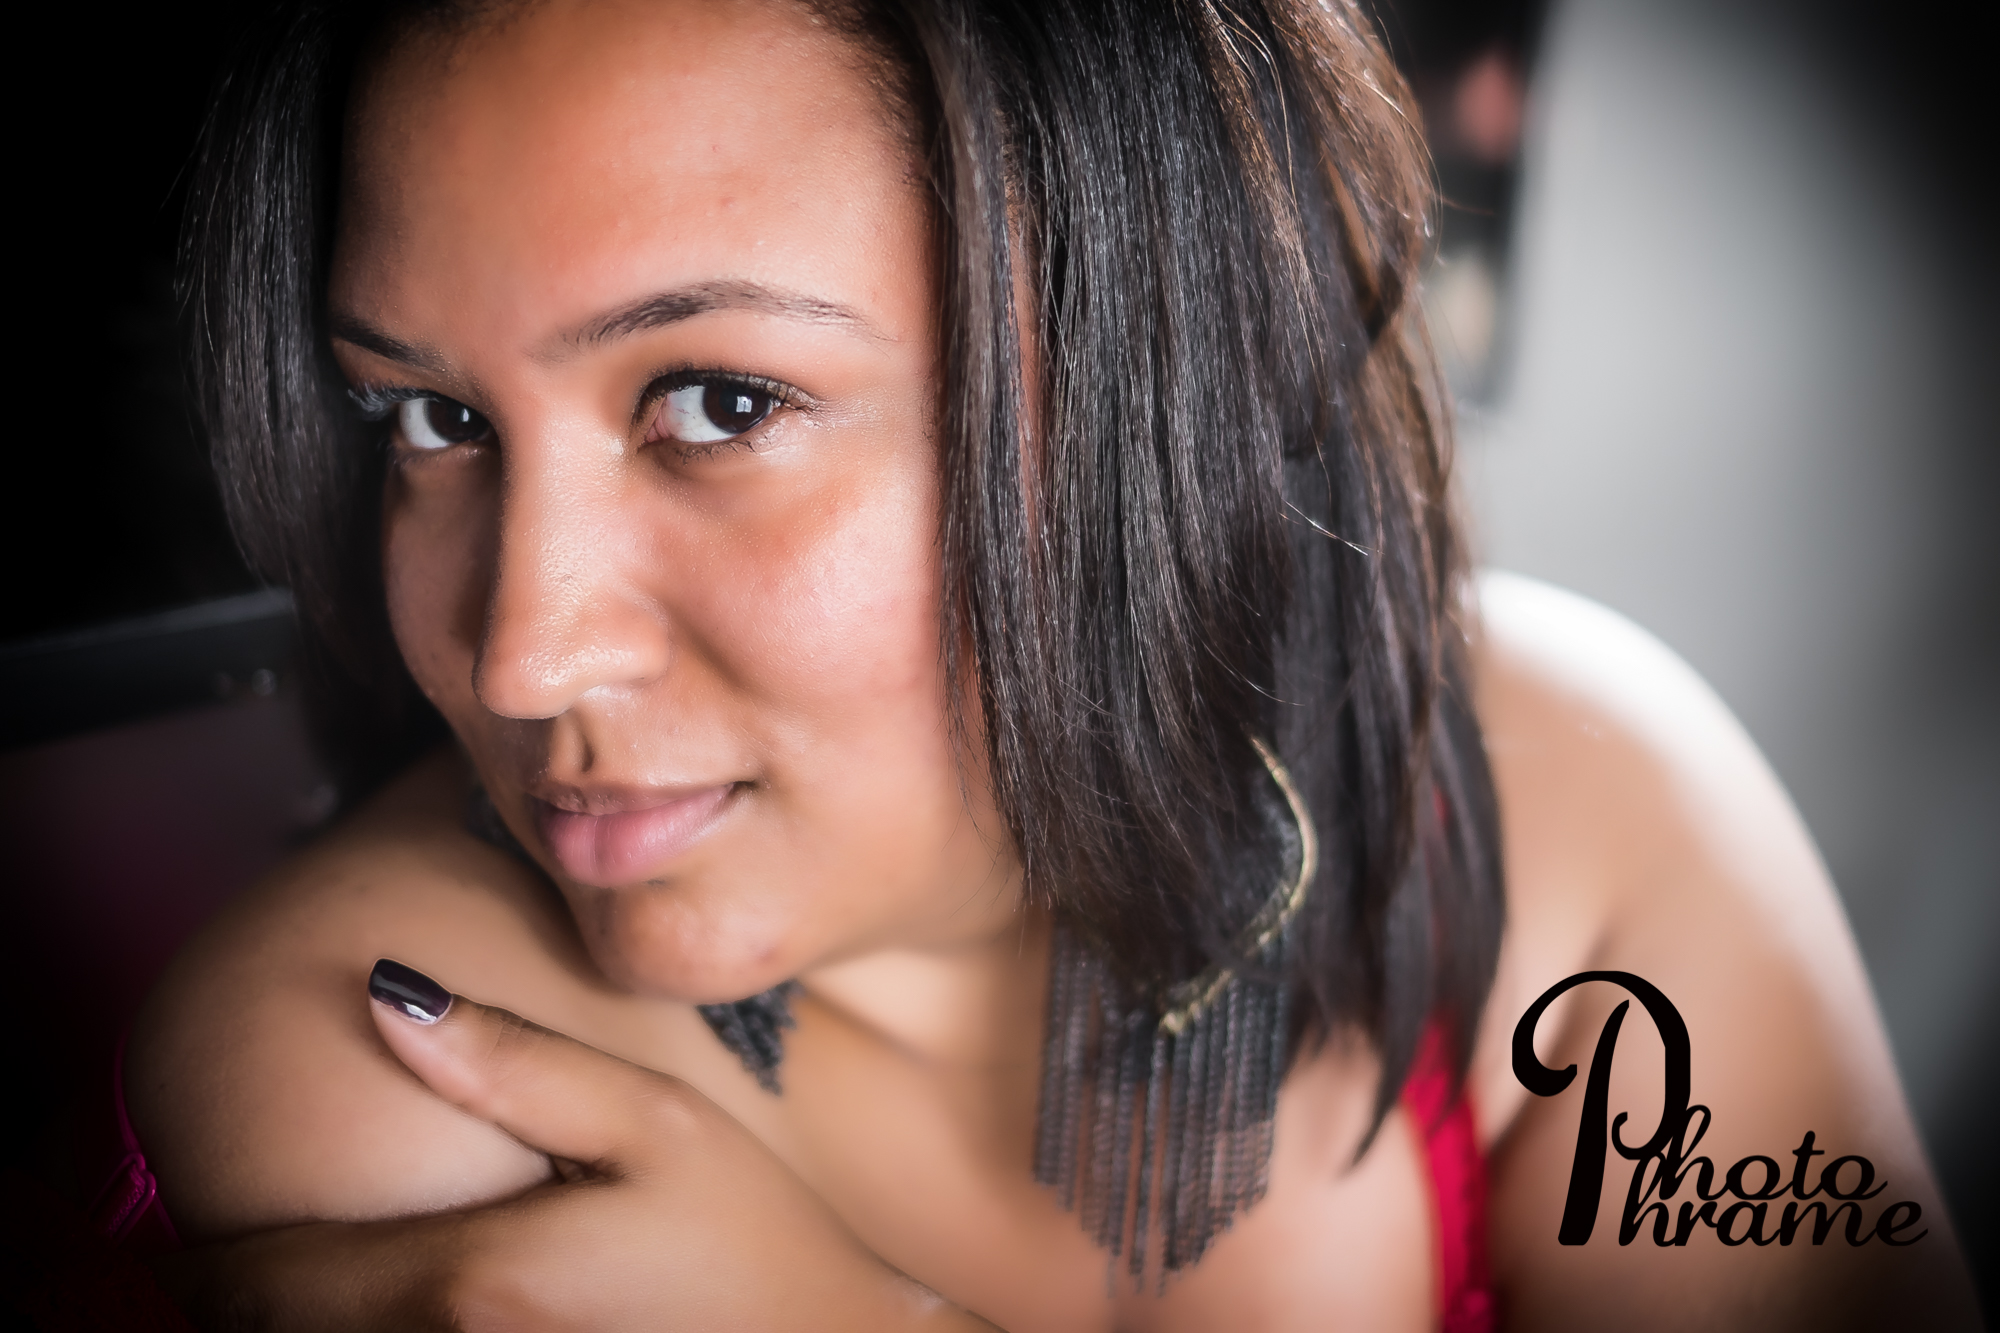 Boudoir sessions with Photo Phrame Photography is about showing that side of you that you always wanted to bring out but was afraid to ask about.